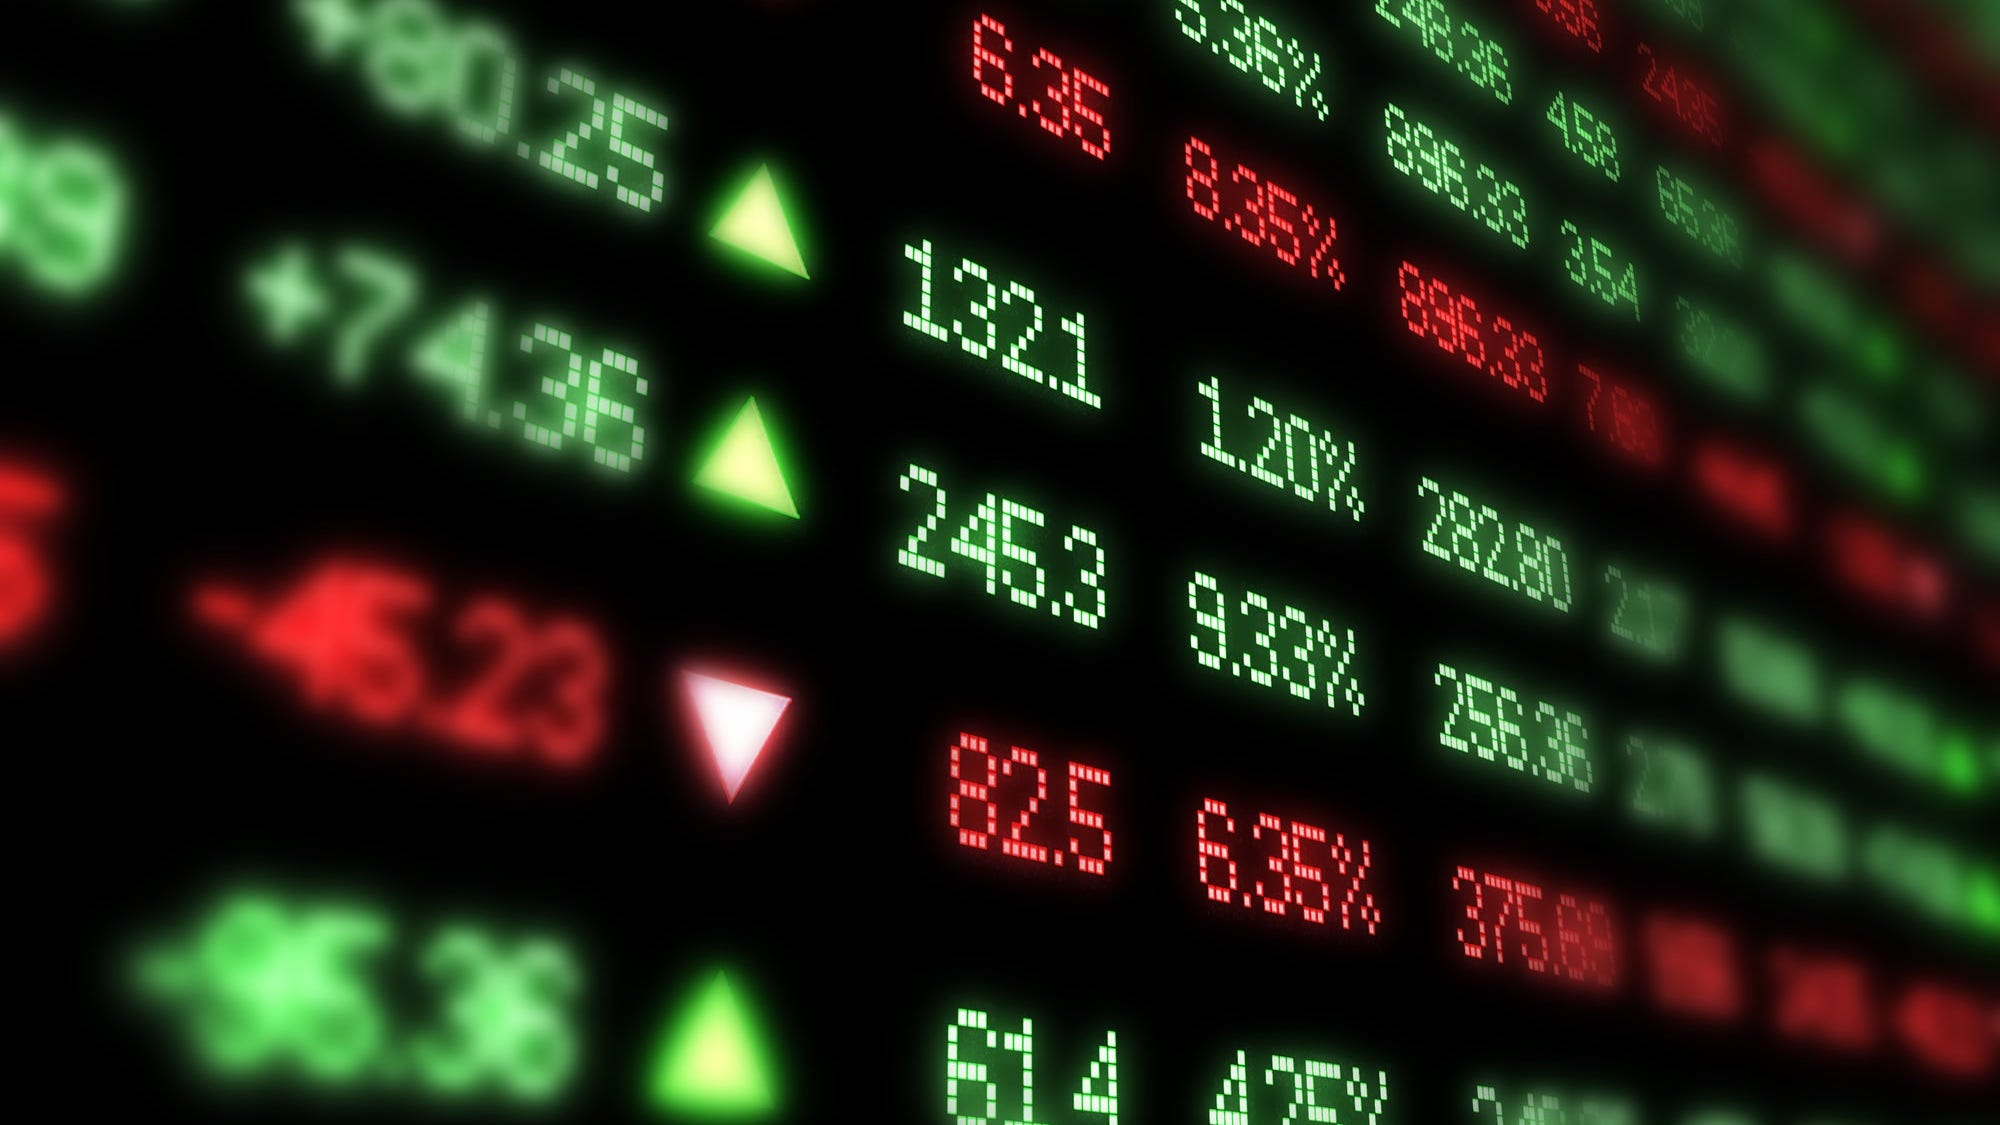 The considerable reasons for all to perform and spend money in the stock market